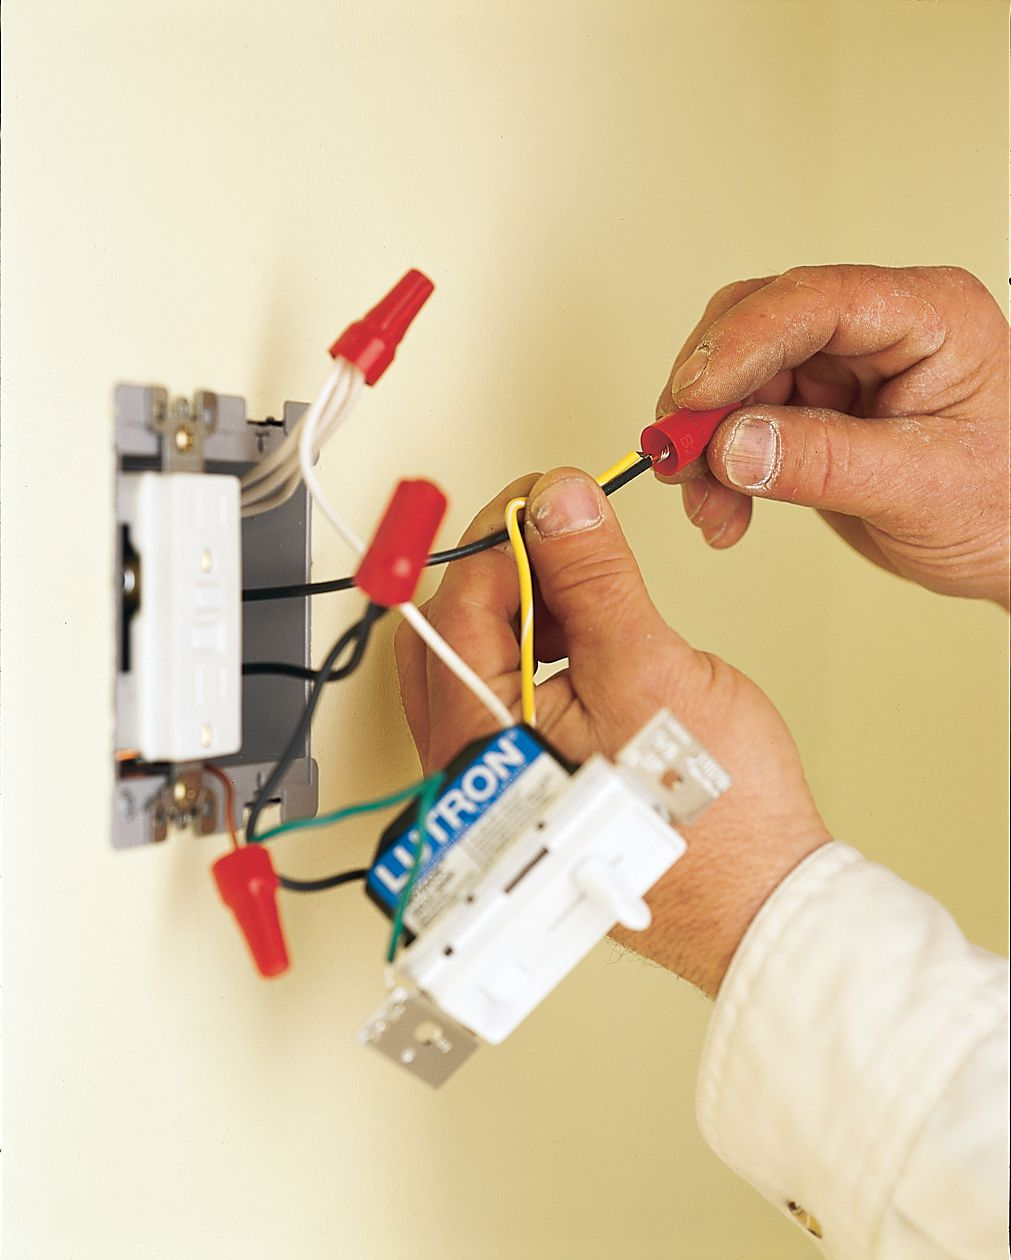 Man Connects New Dimmer Switch For Under Cabinet Lighting